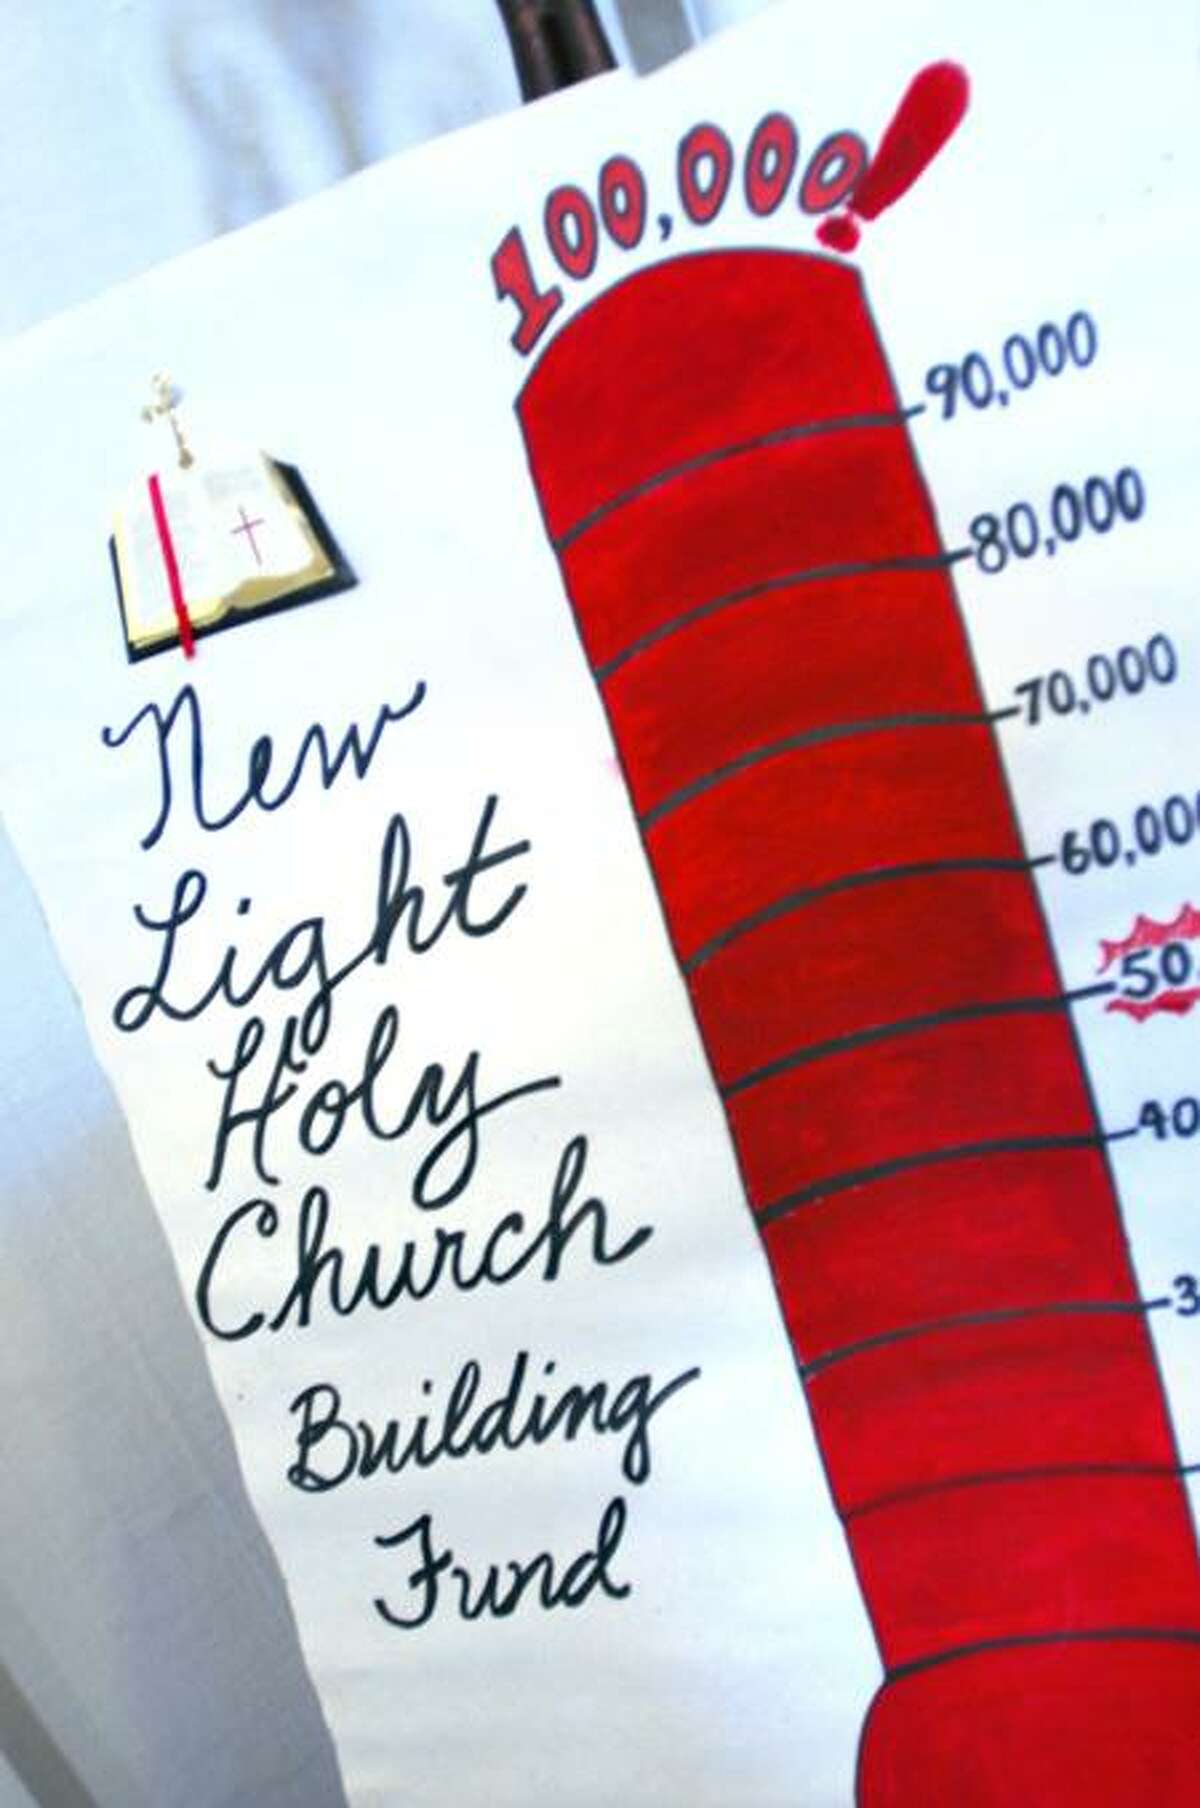 A building fund poster sits at the entrance to the New Light Holy Church on Howard Avenue in New Haven. Photo by Arnold Gold/New Haven Register